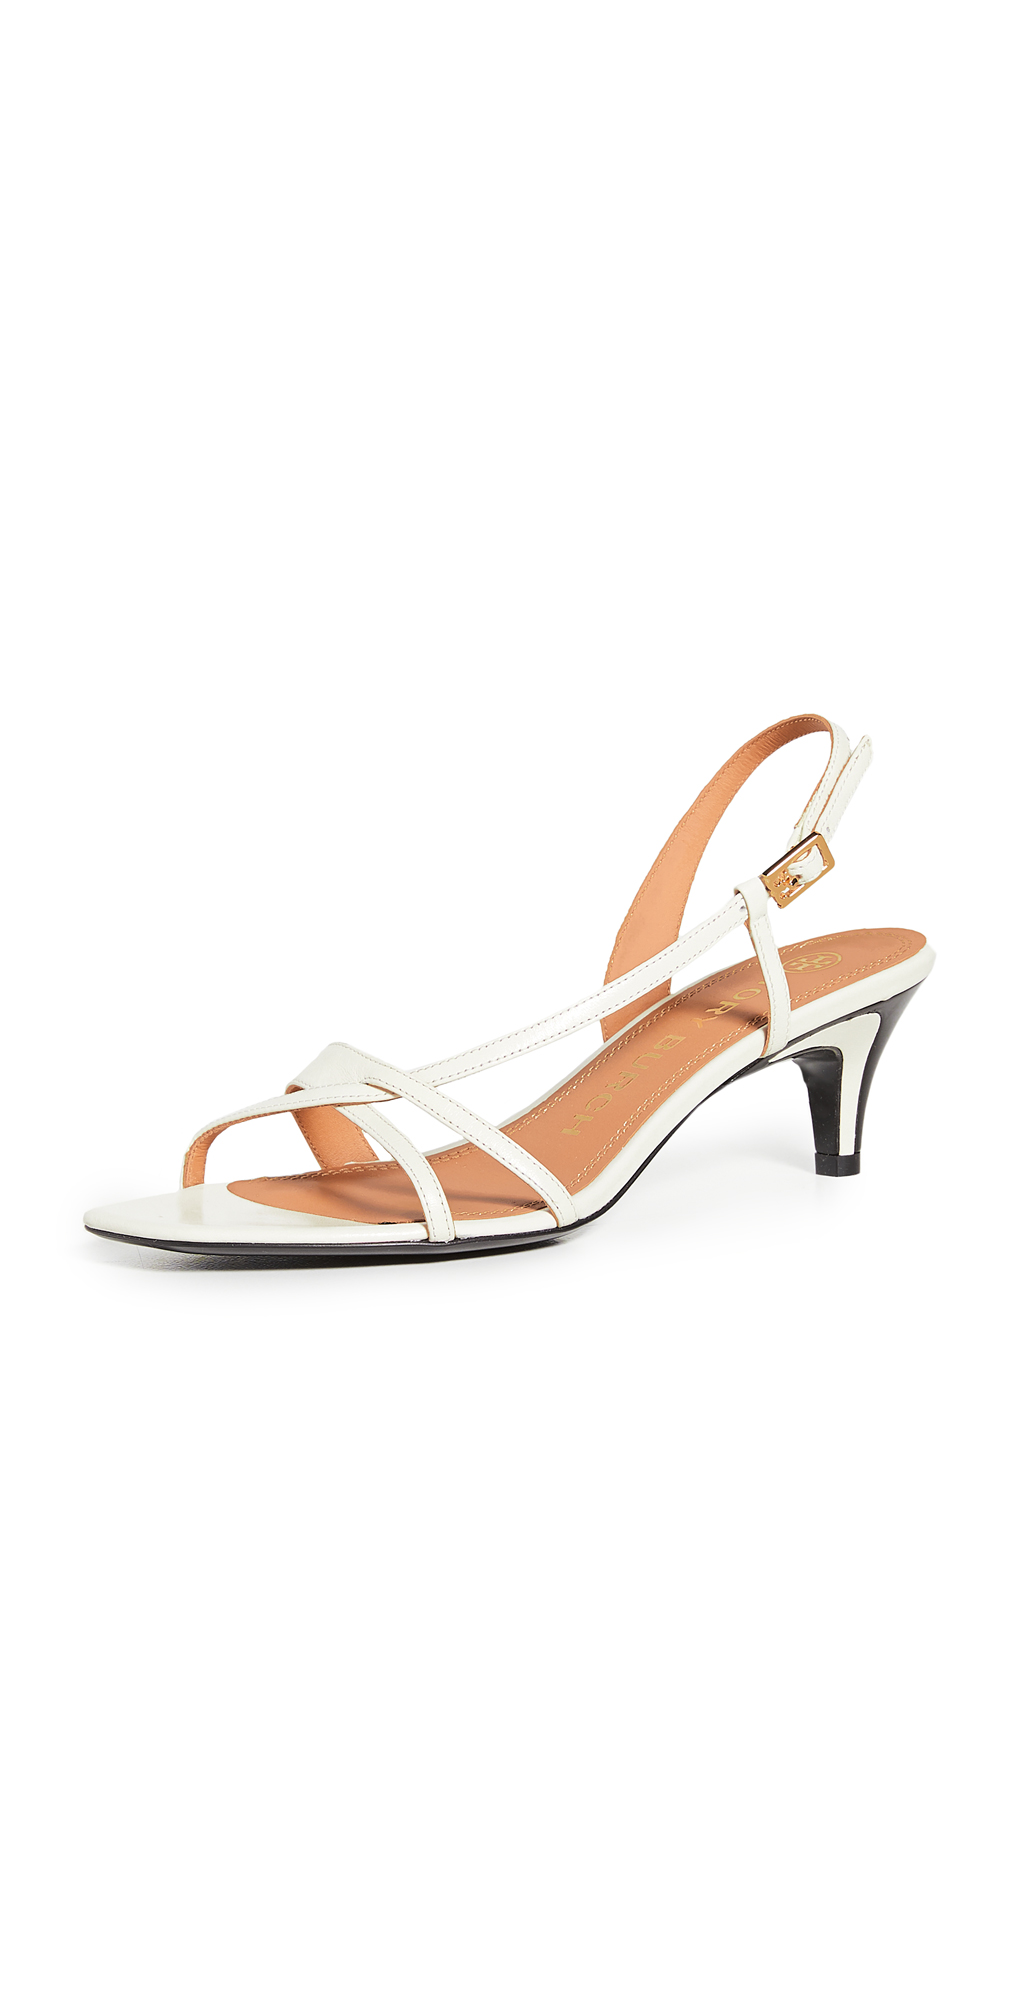 Tory Burch Strappy 55mm Sandals